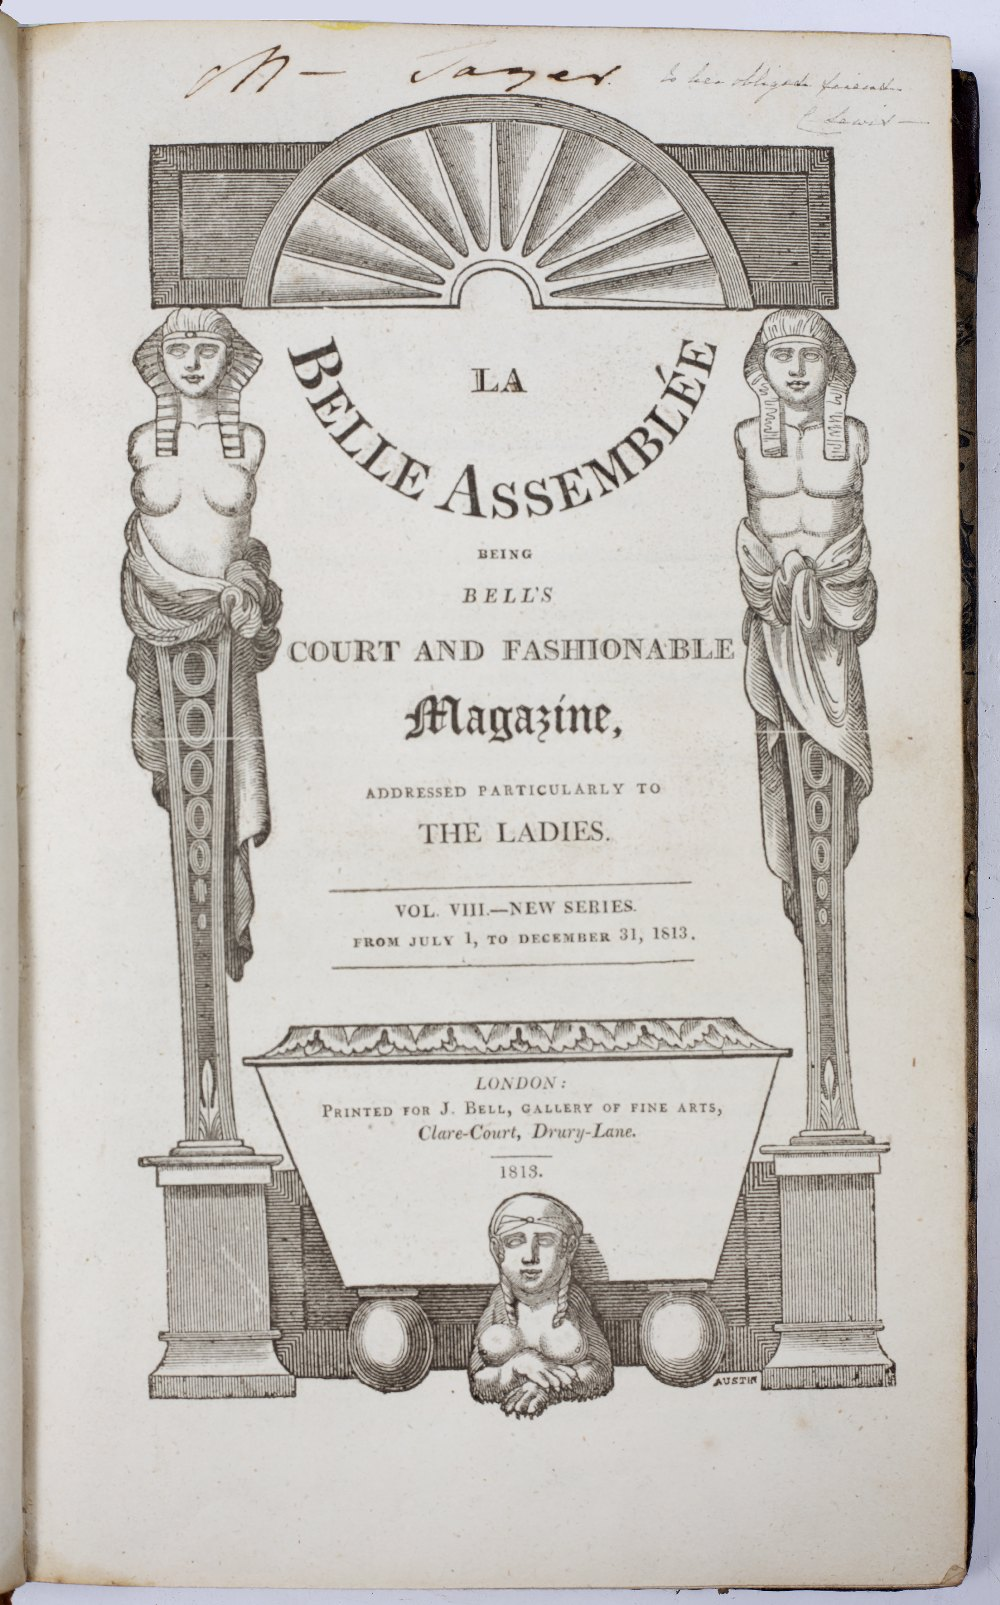 'LA BELLE ASSEMBLÉE being Bell's Court & Fashionable Magazine addressed particularly to Ladies'' Vol - Image 2 of 4